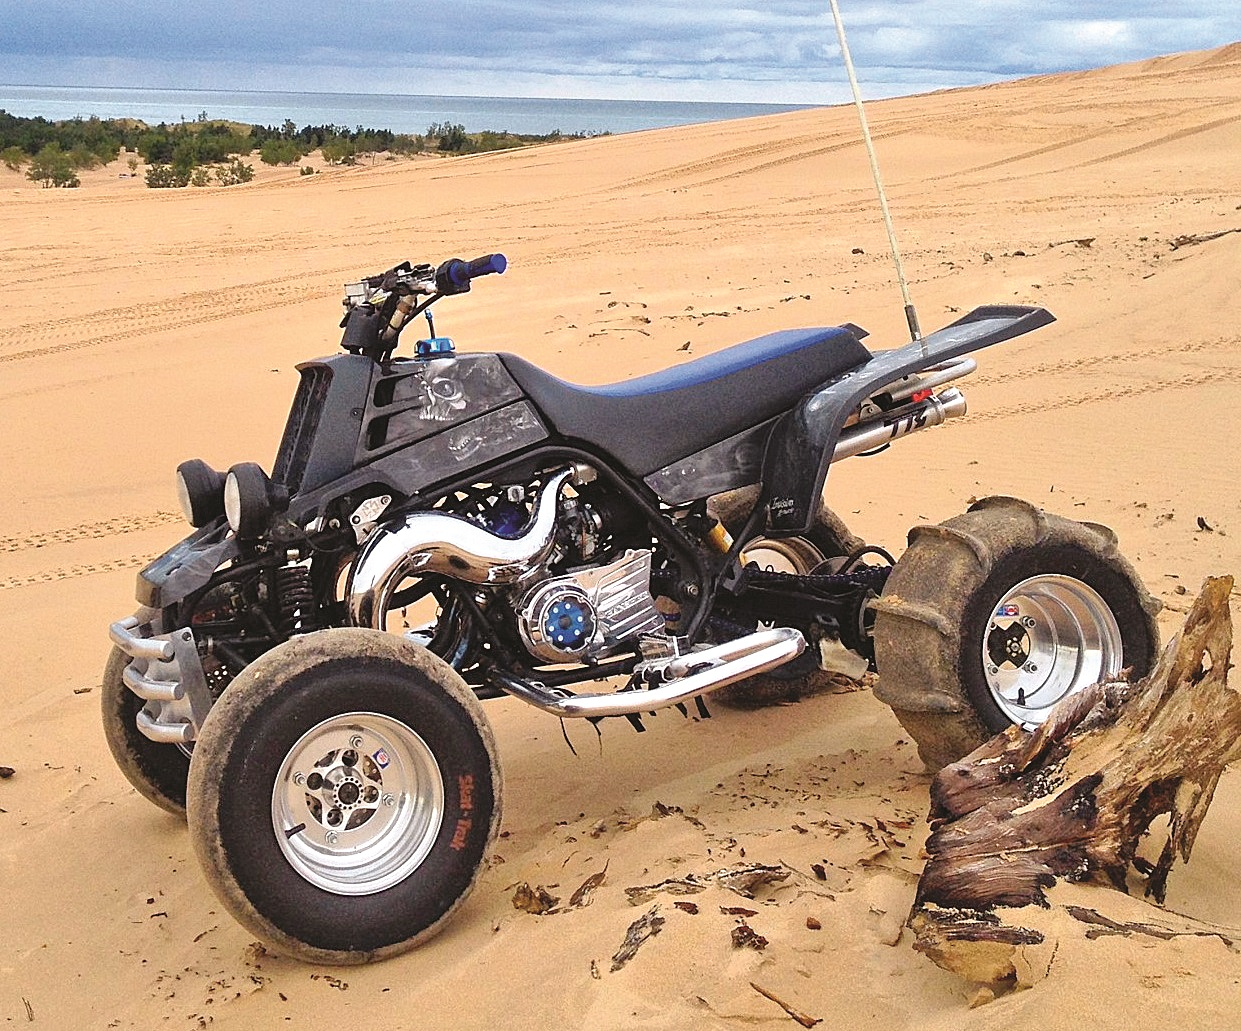 hight resolution of trenton crandall s 2006 special edition banshee sits proudly at michigan s silver lake sand dunes it